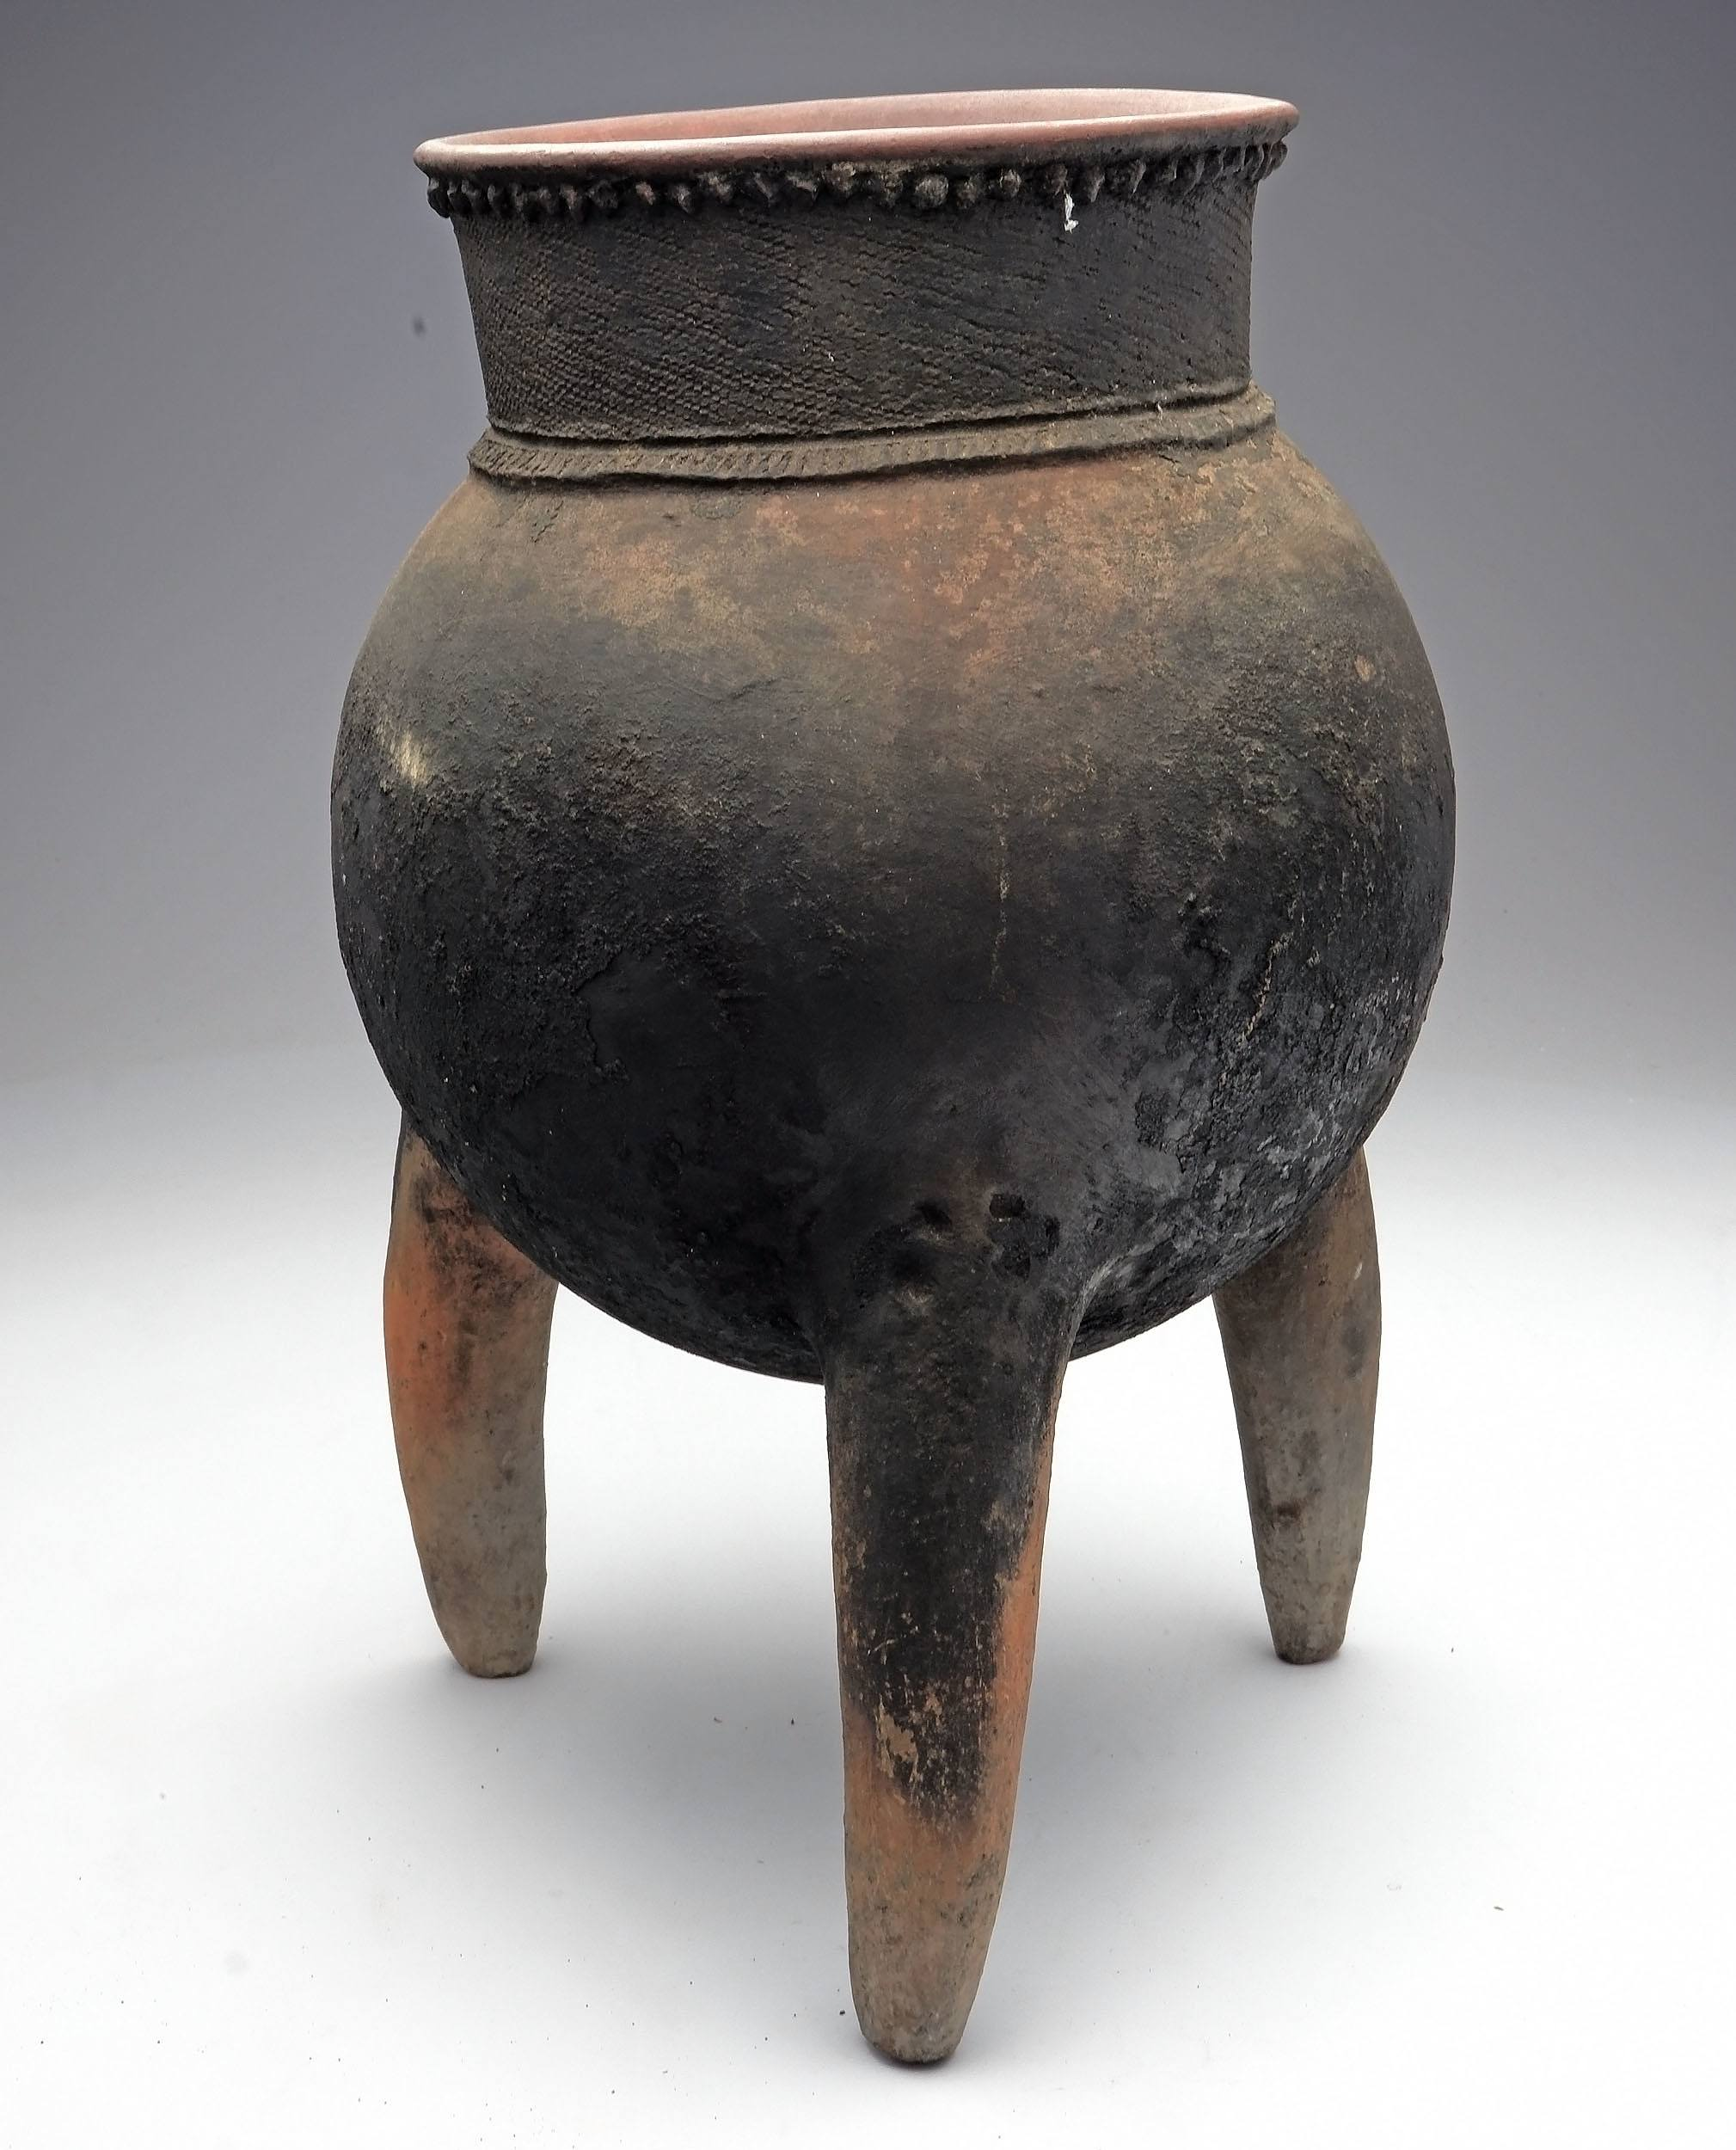 'Ceramic 3-Legged Cooking Pot, Republic of Chad'